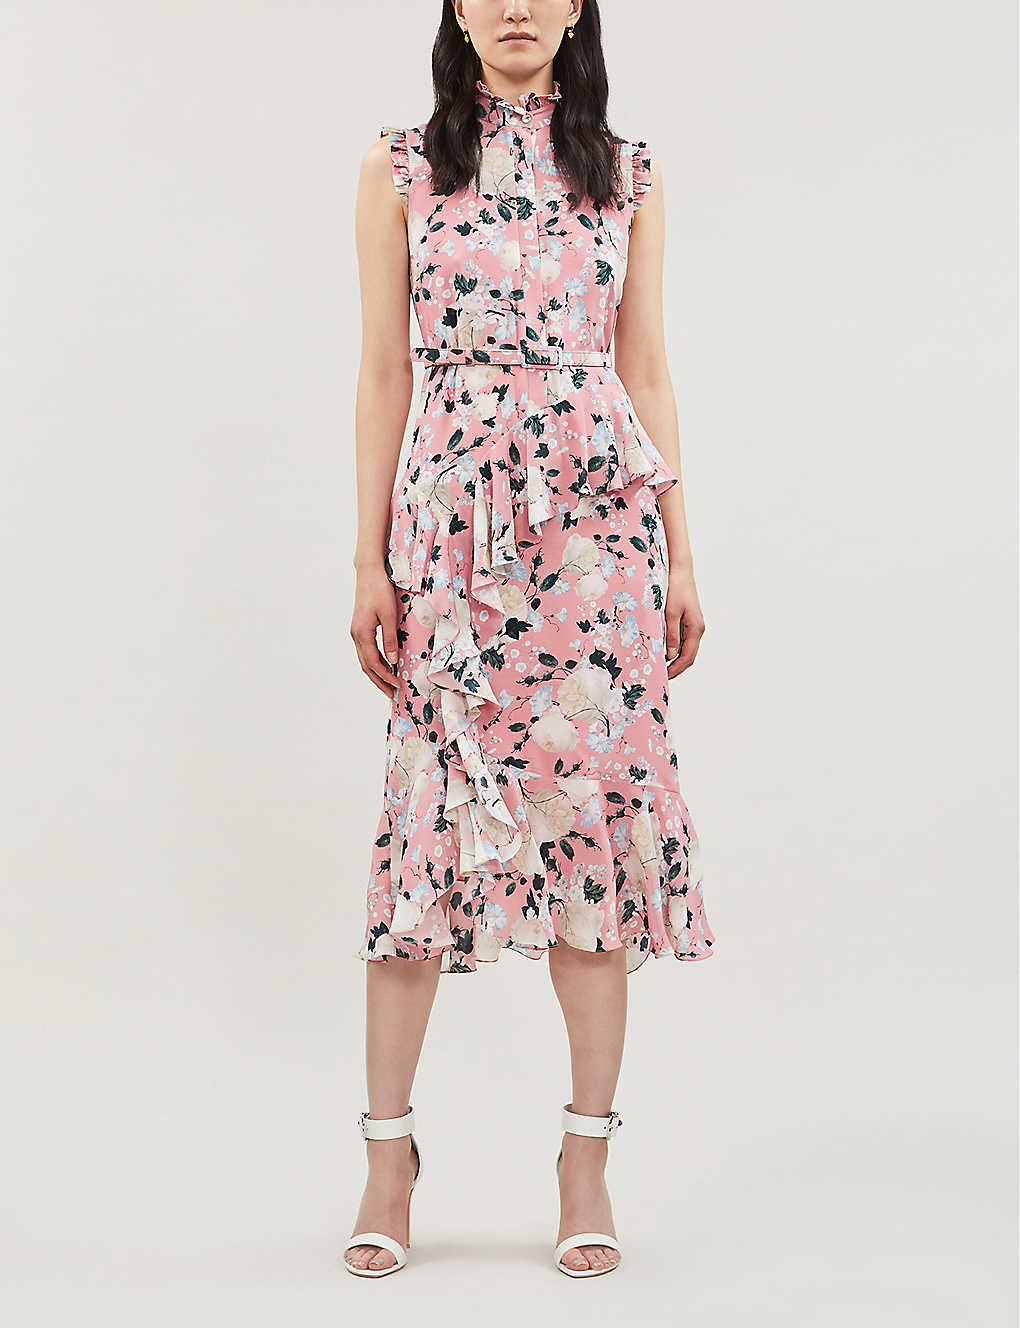 ERDEM Ruffled Silk Pink Dress